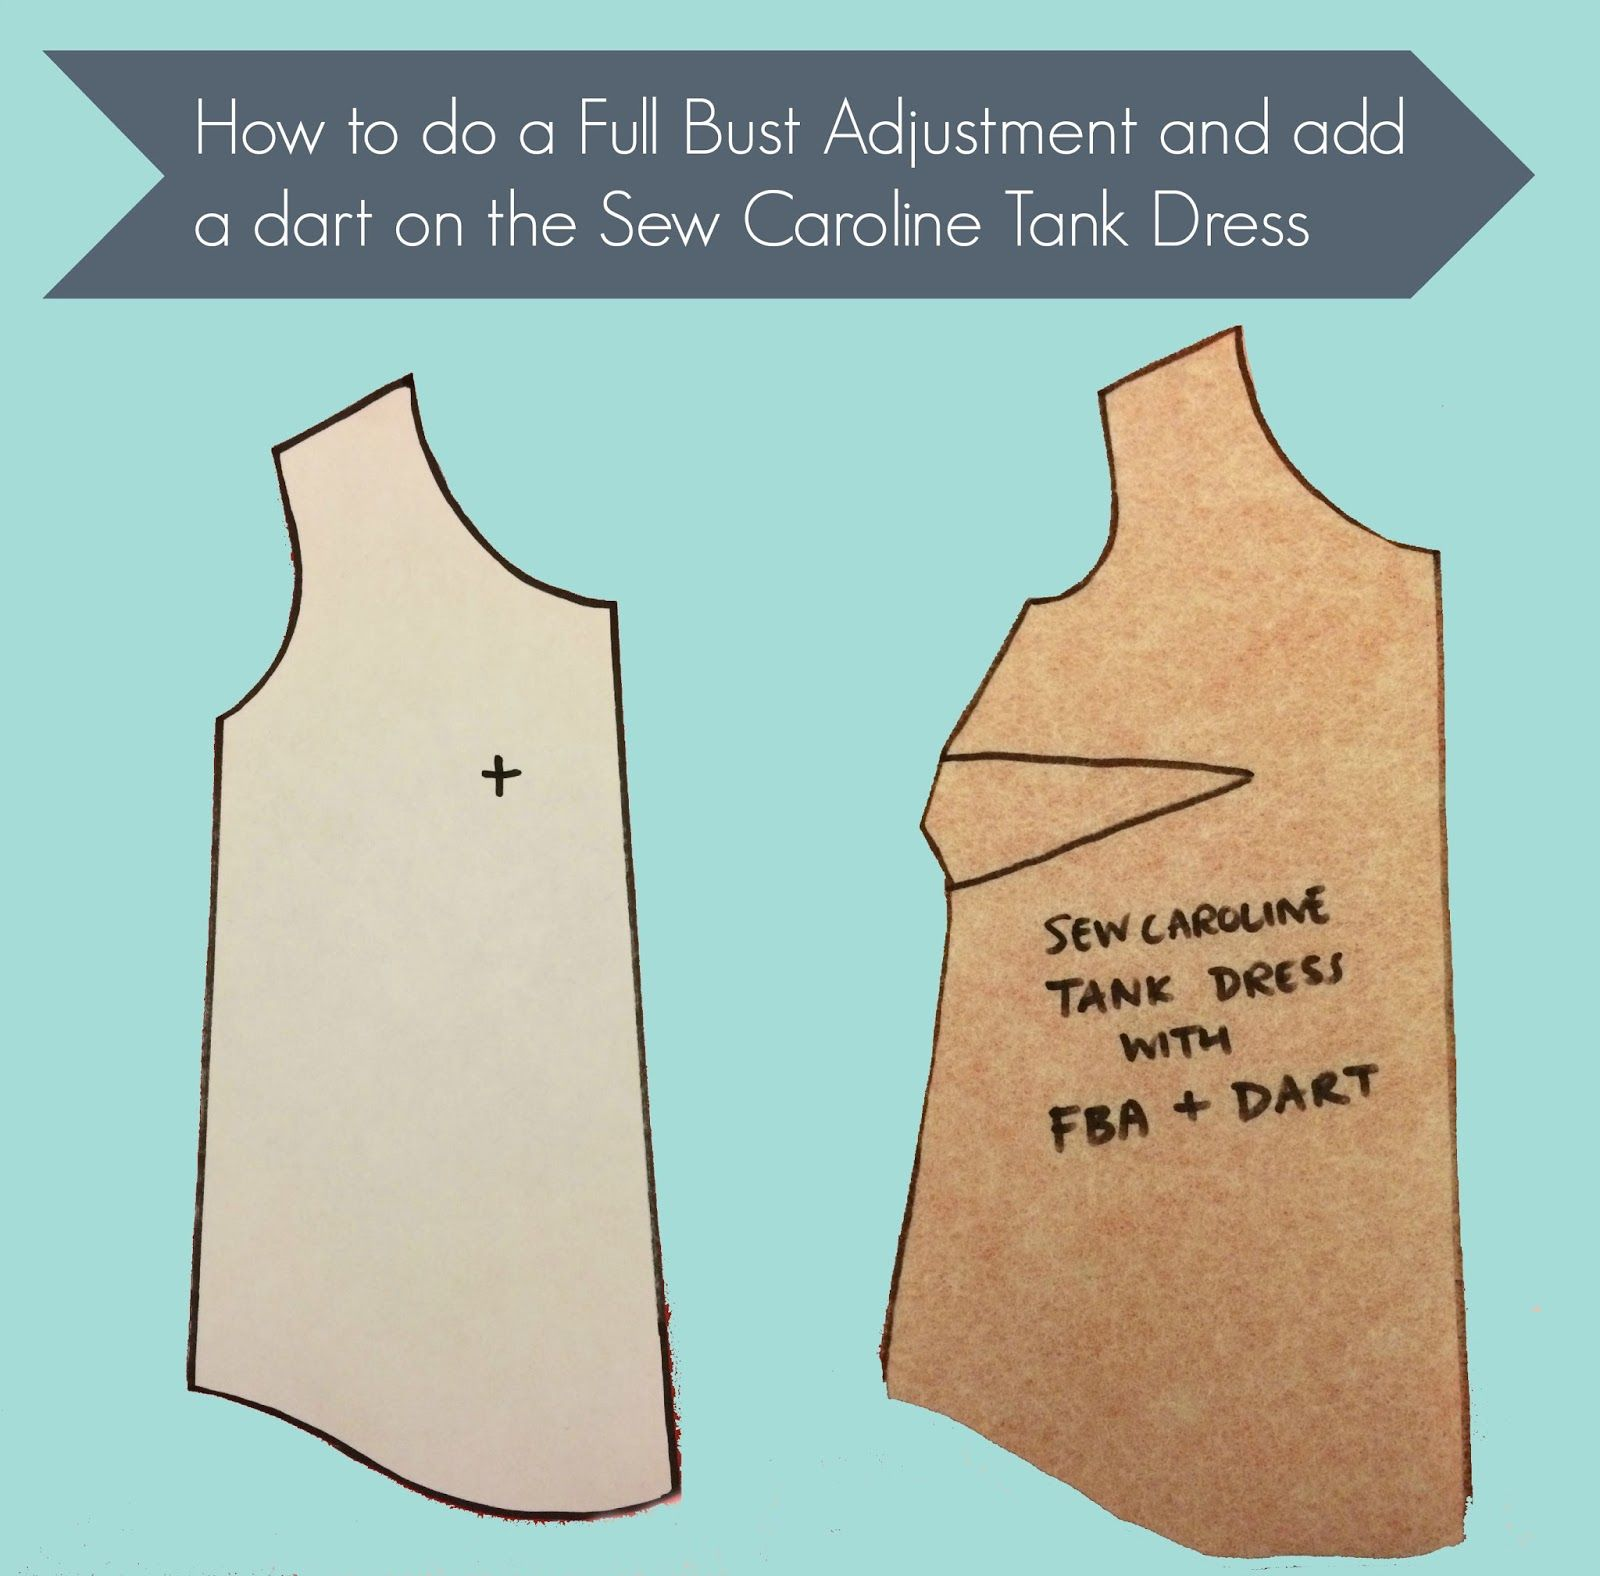 How to do a full bust adjustment and add a dart on the Sew Caroline Tank Dress or any non-darted dress or top | Cashmerette